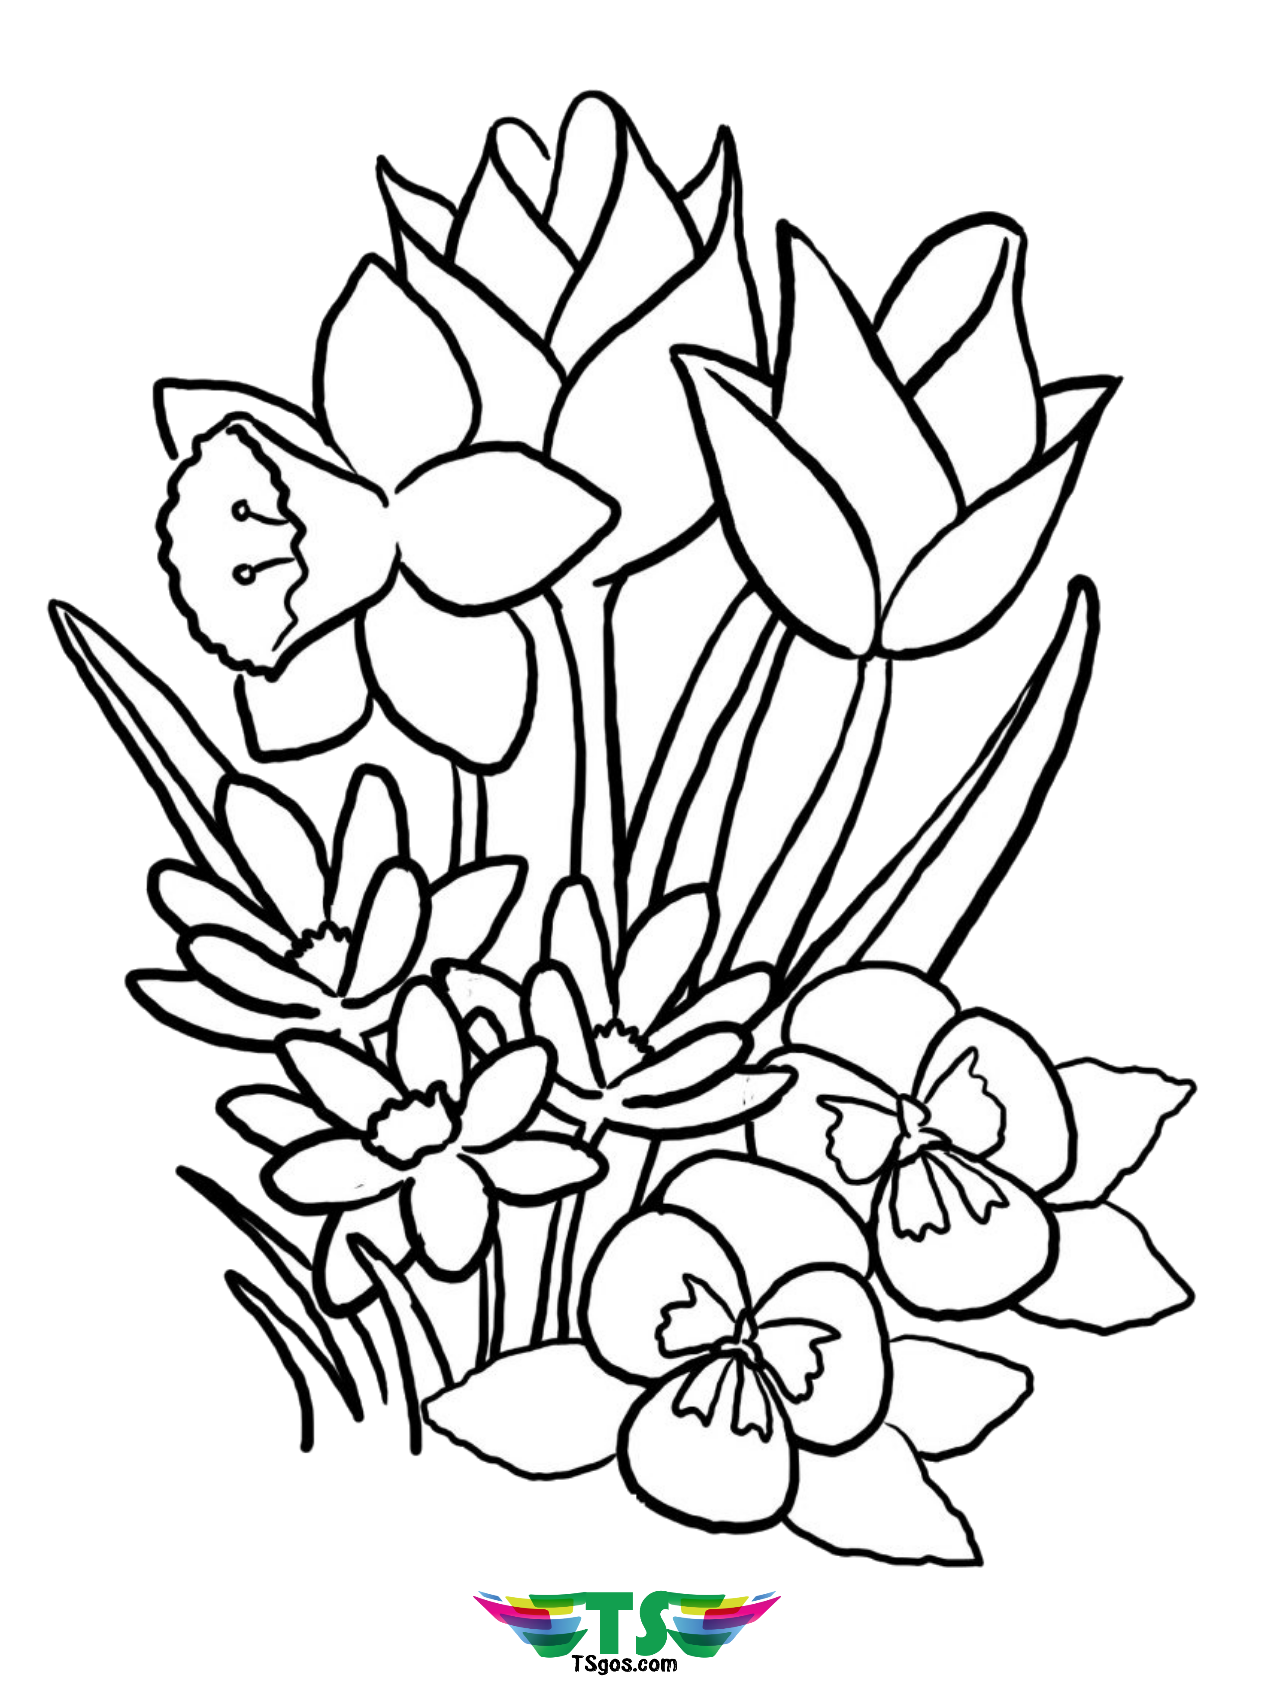 coloring sheets of flowers free download to print beautiful spring flower coloring of sheets flowers coloring